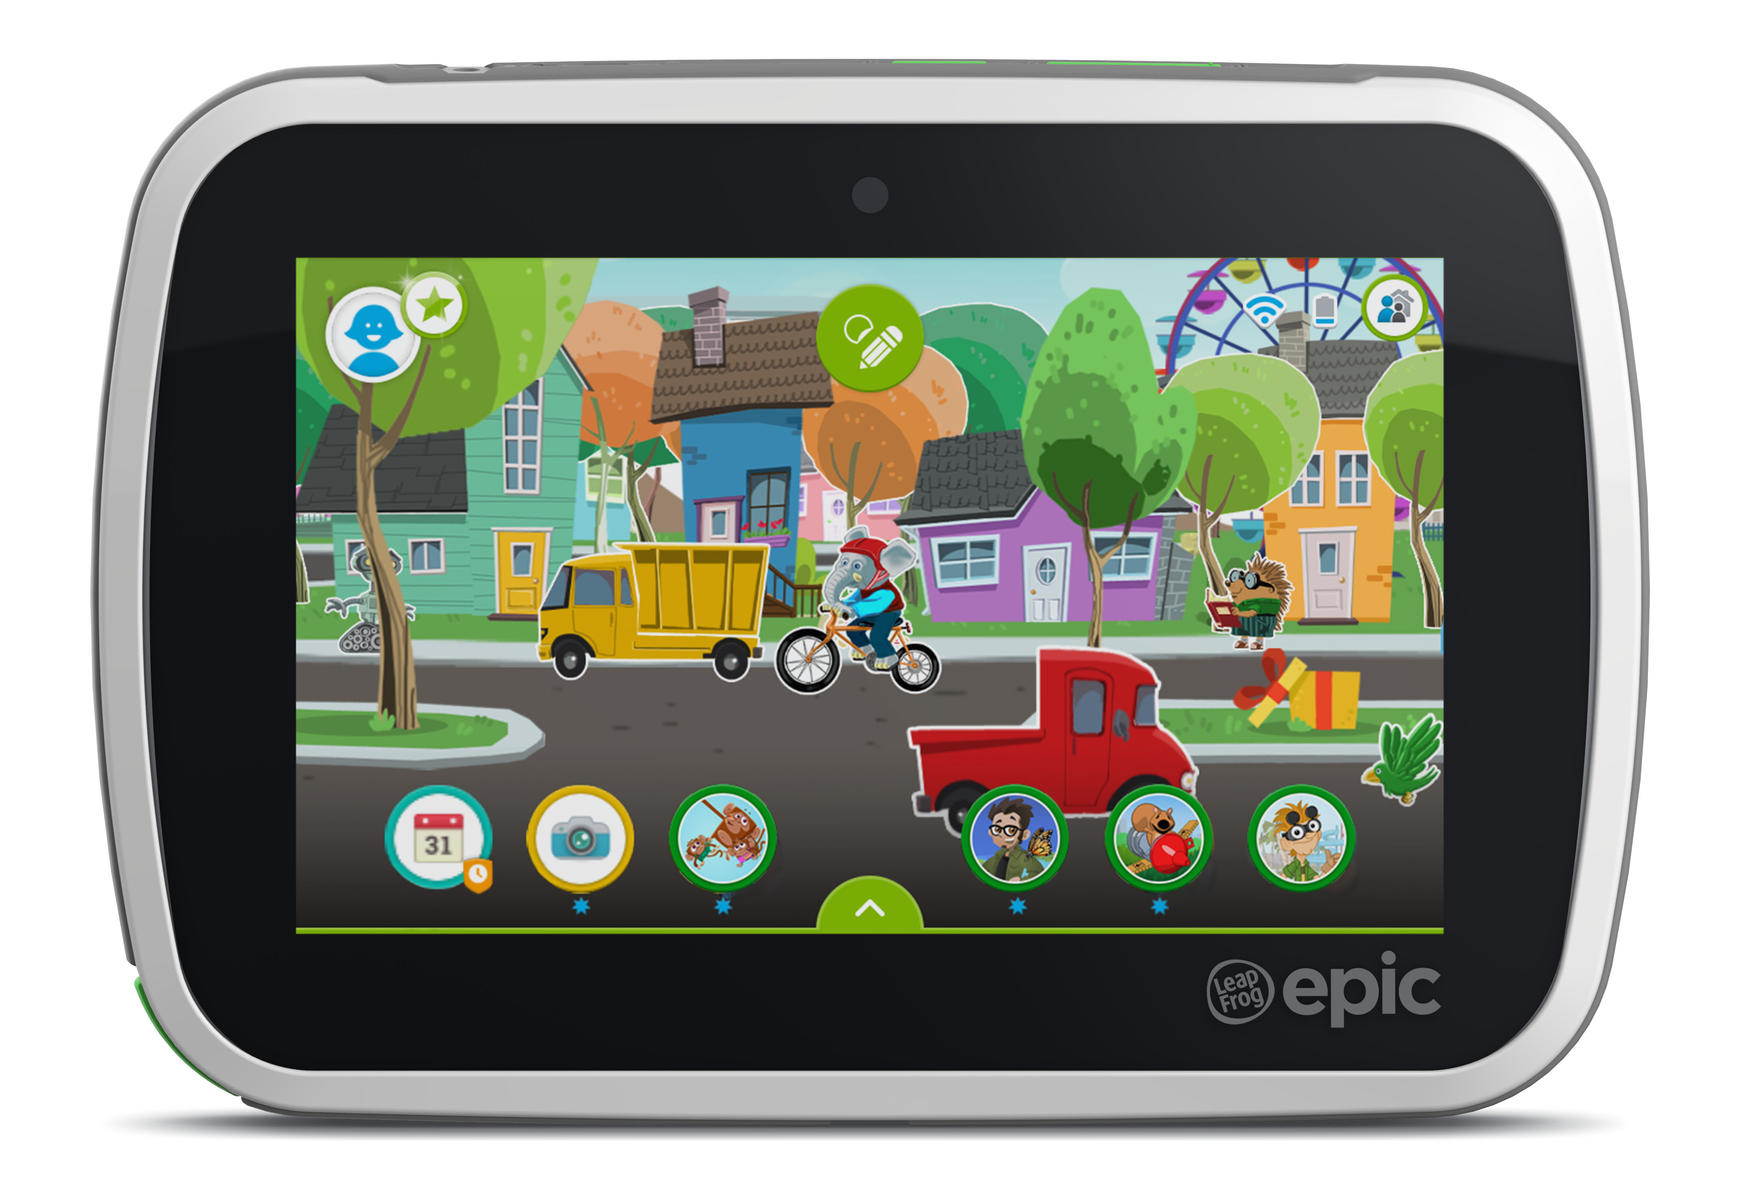 LeapFrog Epic Kids' Tablet